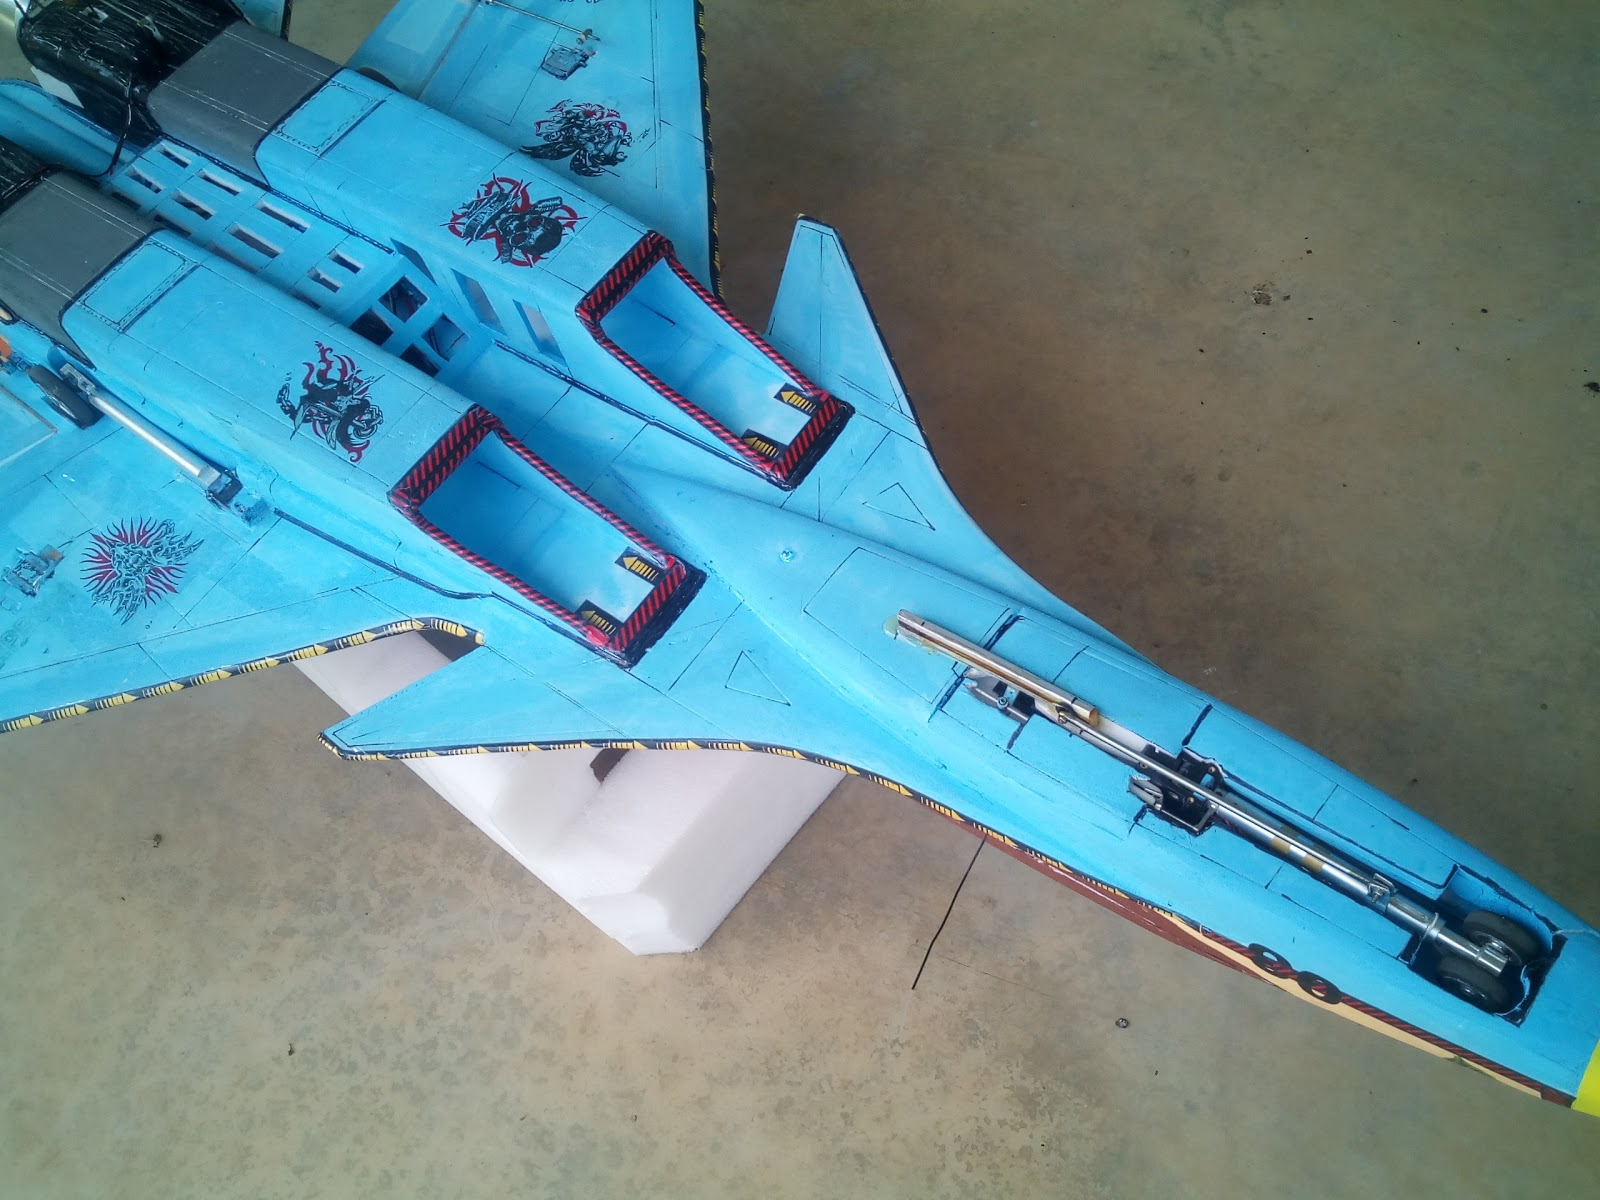 Images of Scratch Built Rc Airplanes - #rock-cafe